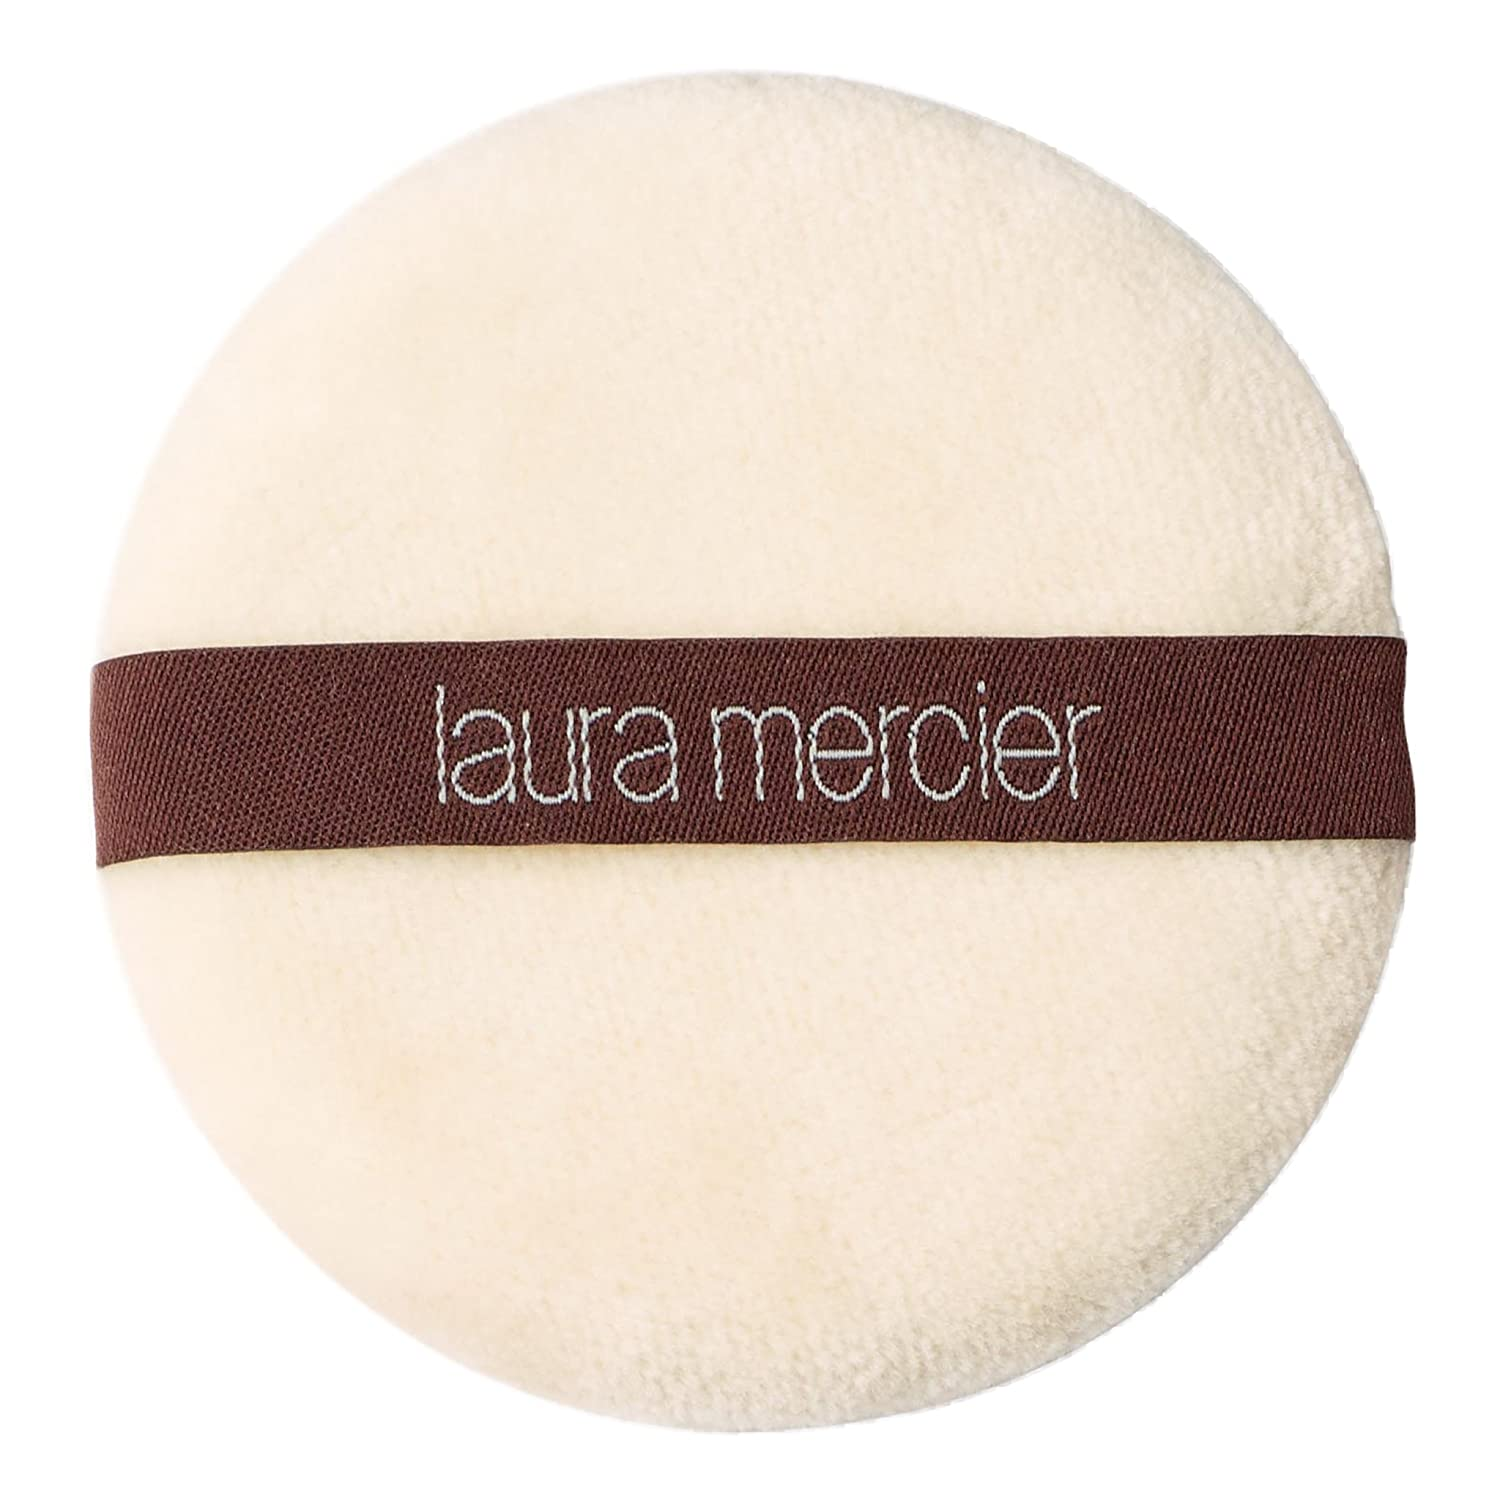 Velour Puff - - Laura Mercier 0476987022364